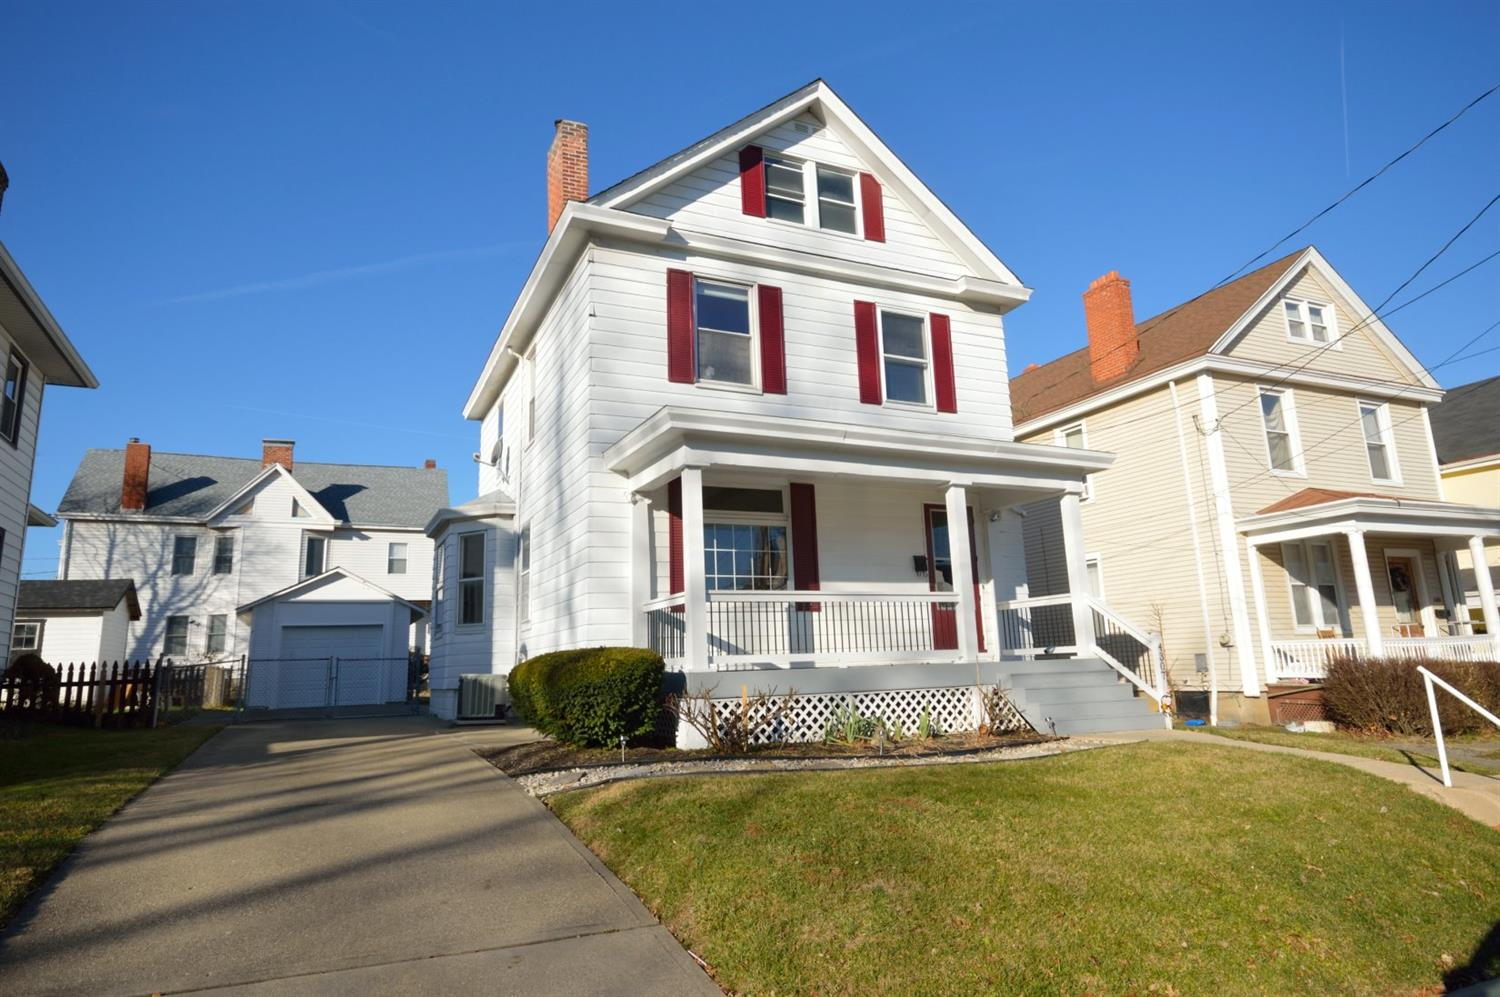 4307 Ivanhoe Ave Norwood Oh 45212 Listing Details Mls